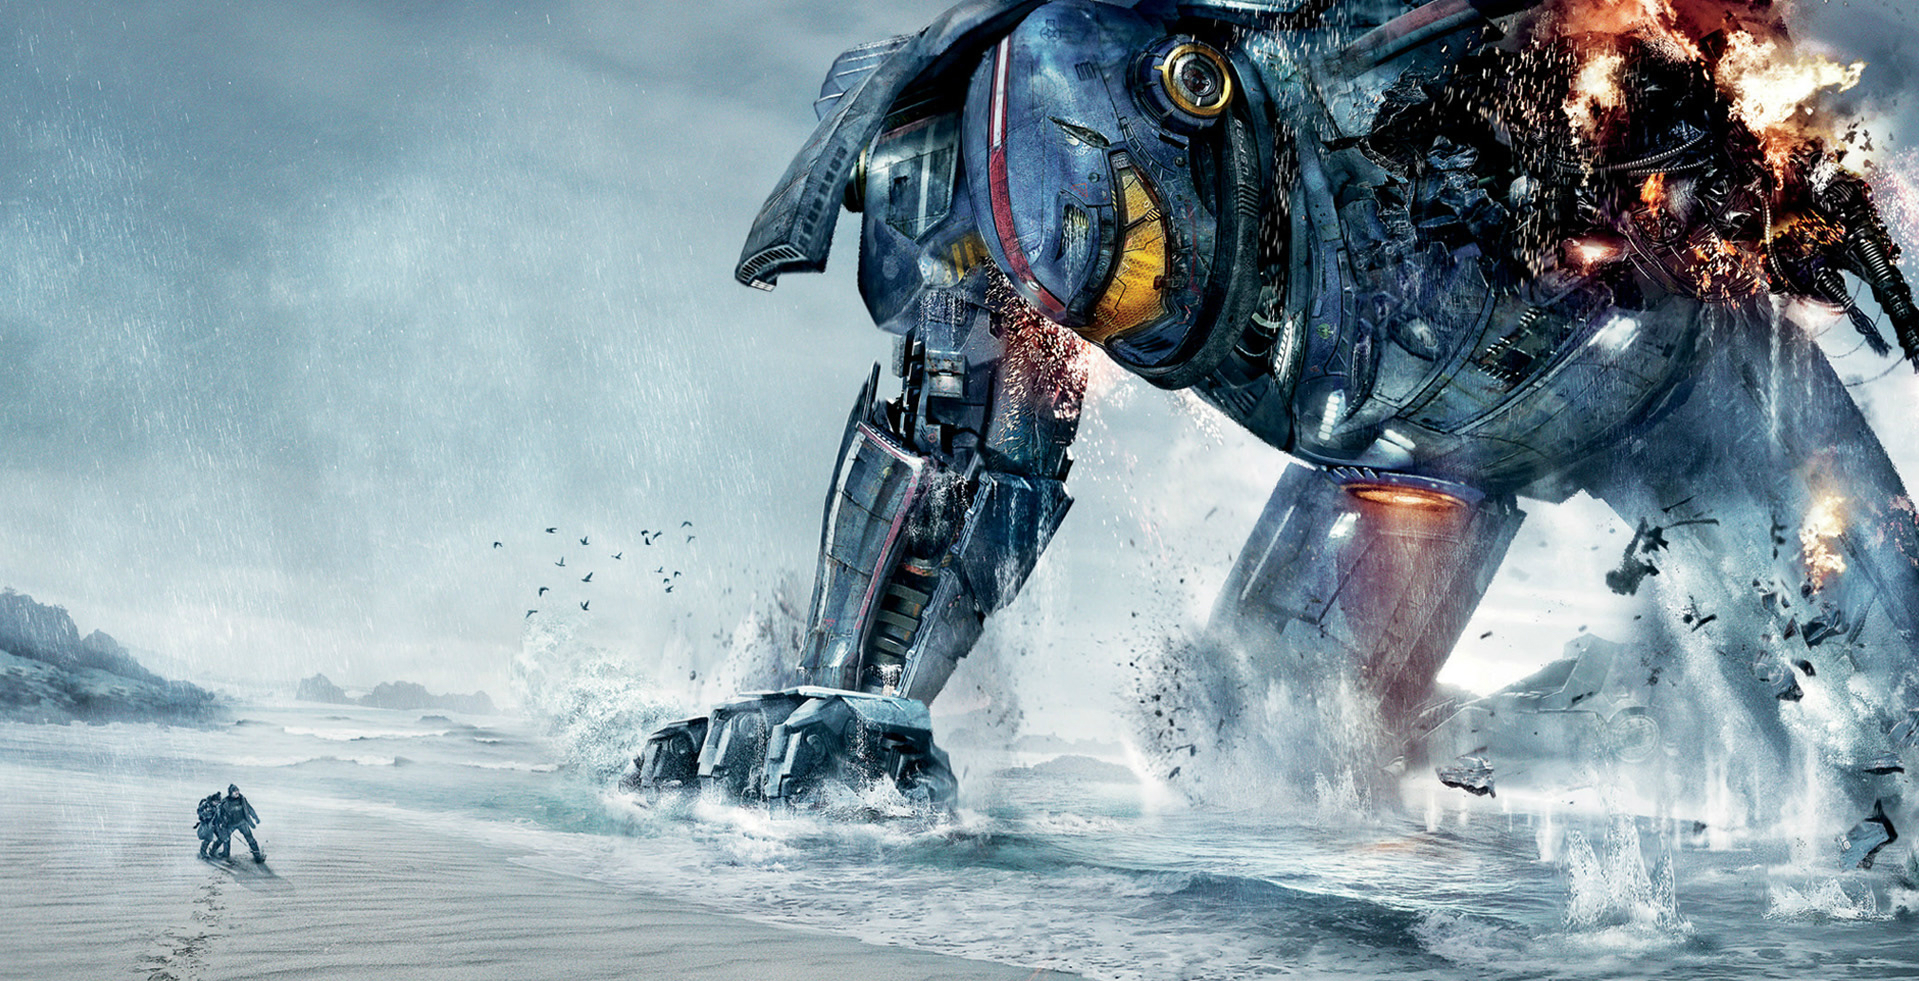 pacific rim 2017 movie poster - photo #22